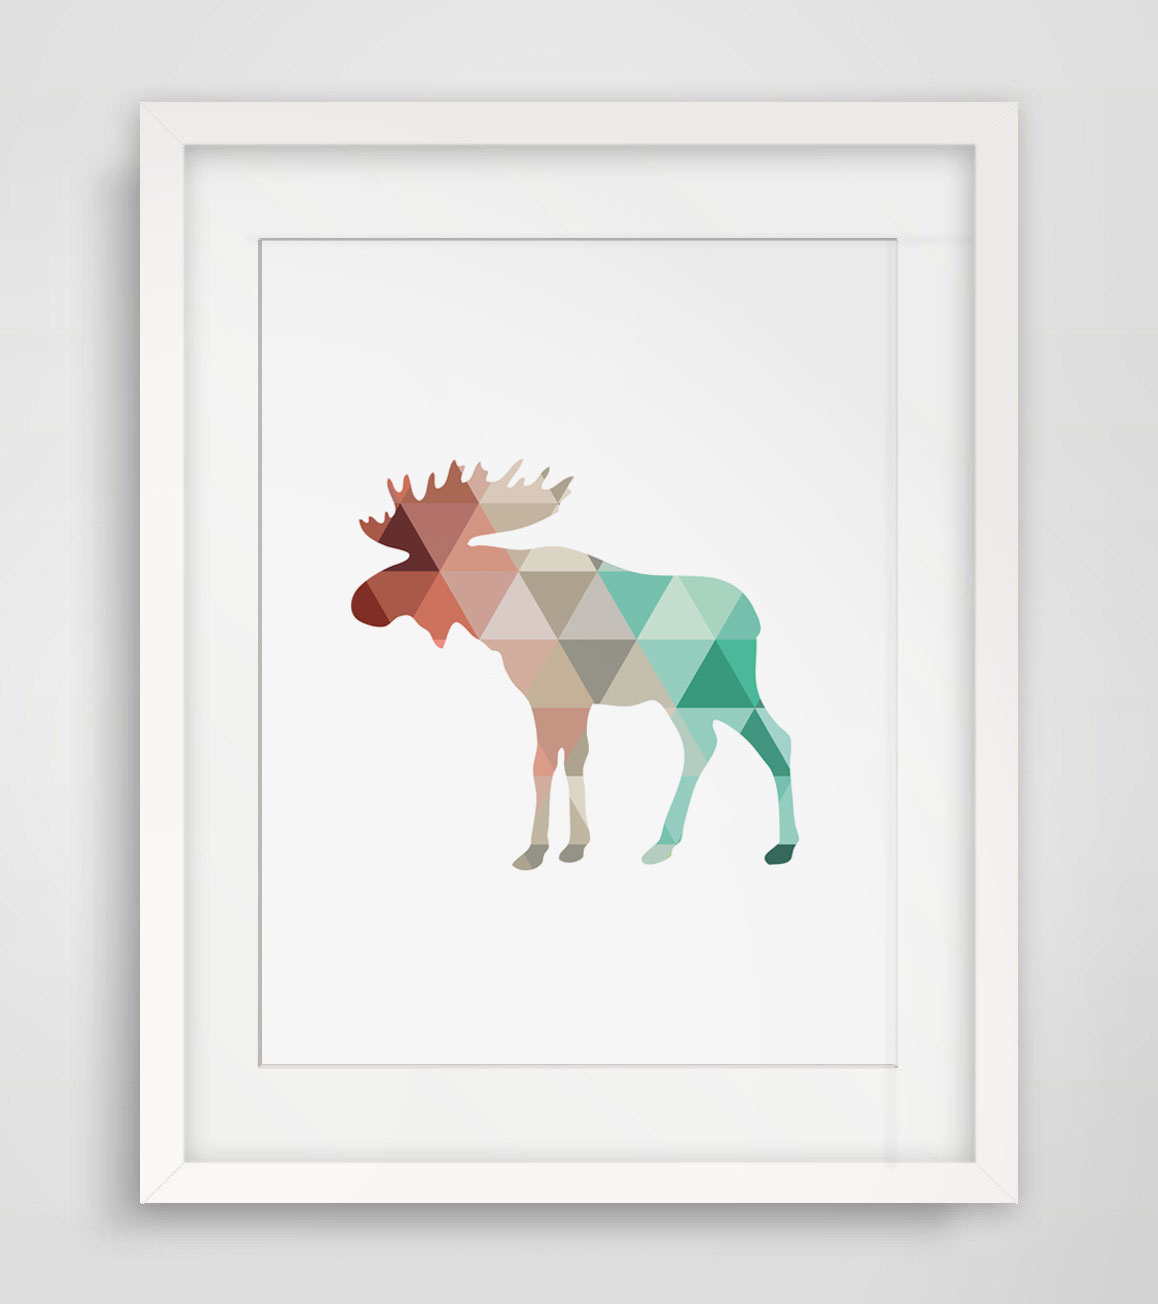 Coral & Mint Moose Print Moose Antlers Wall Art Coral and Mint Colors Moose Print Animal Geometric Art No Framed AP039